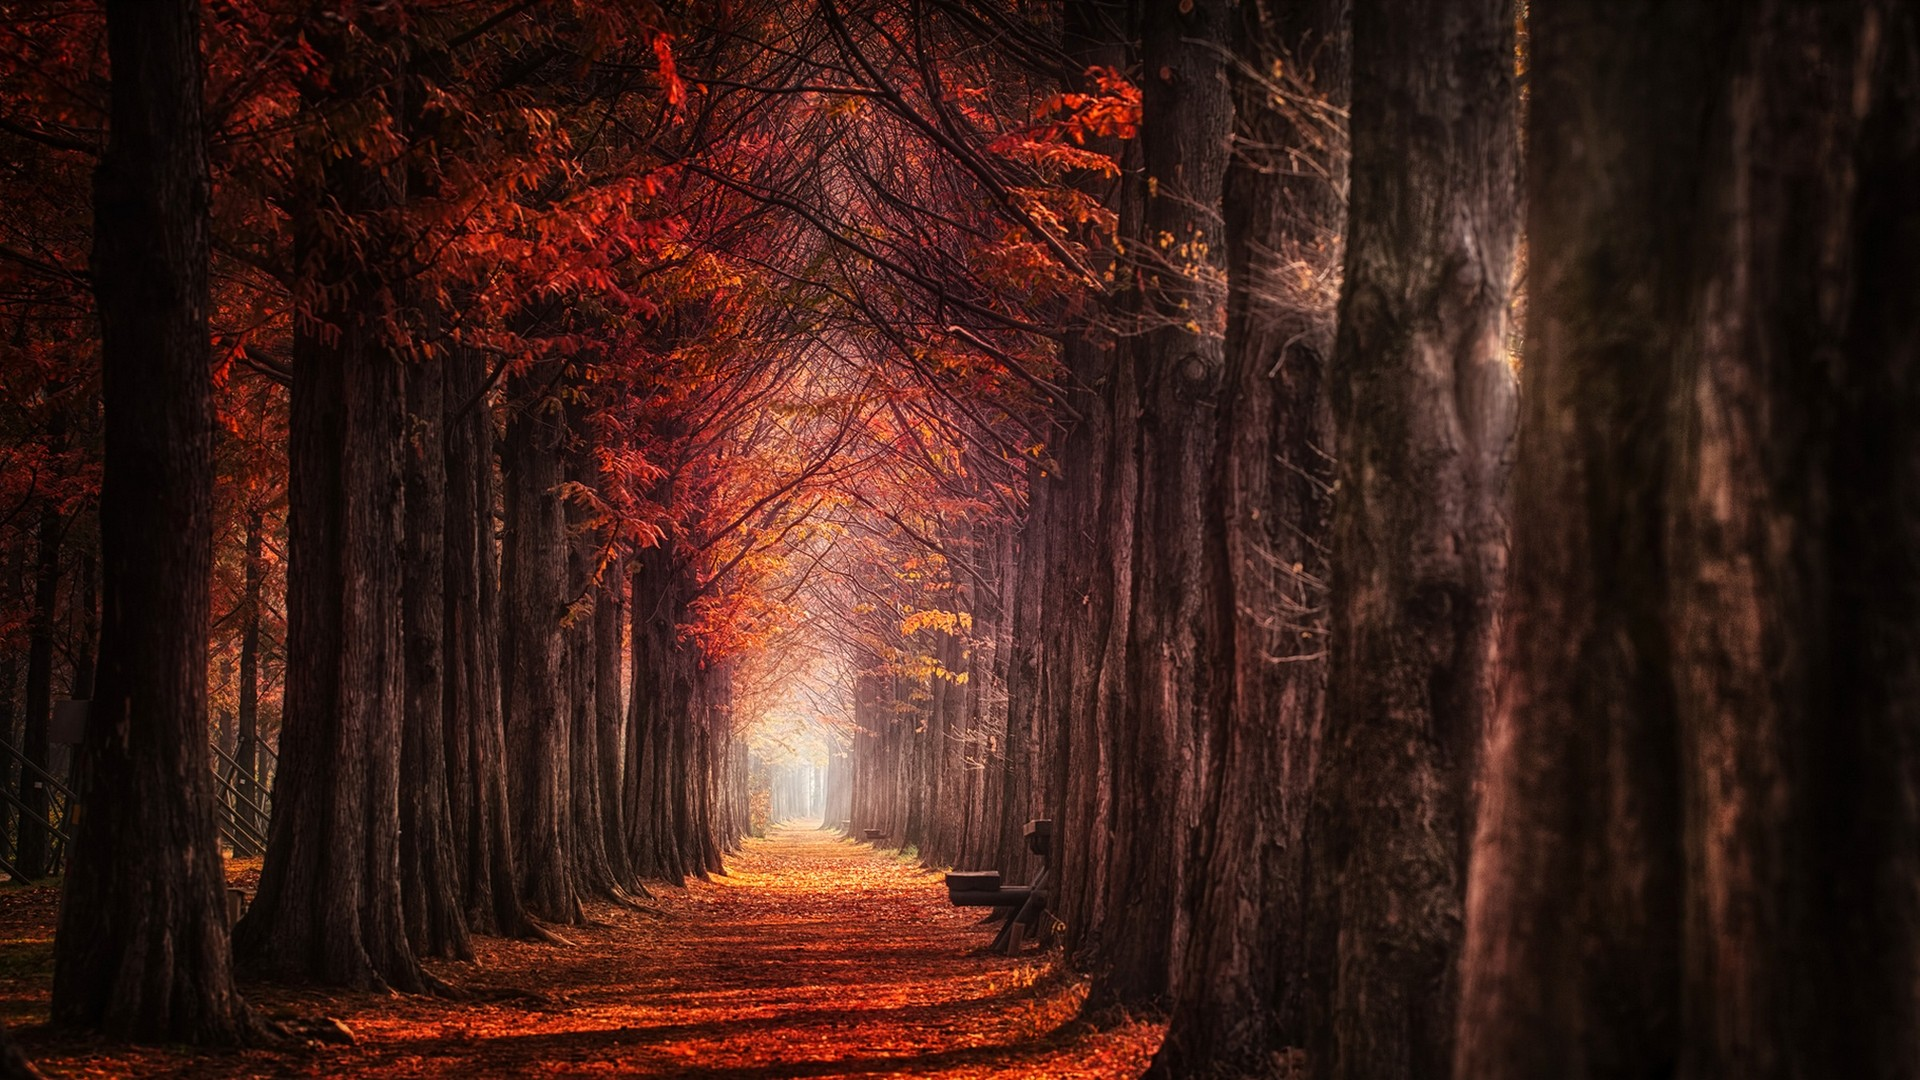 Fall Leaf Iphone Wallpaper Path In Autumn Forest Hd Wallpaper Background Image